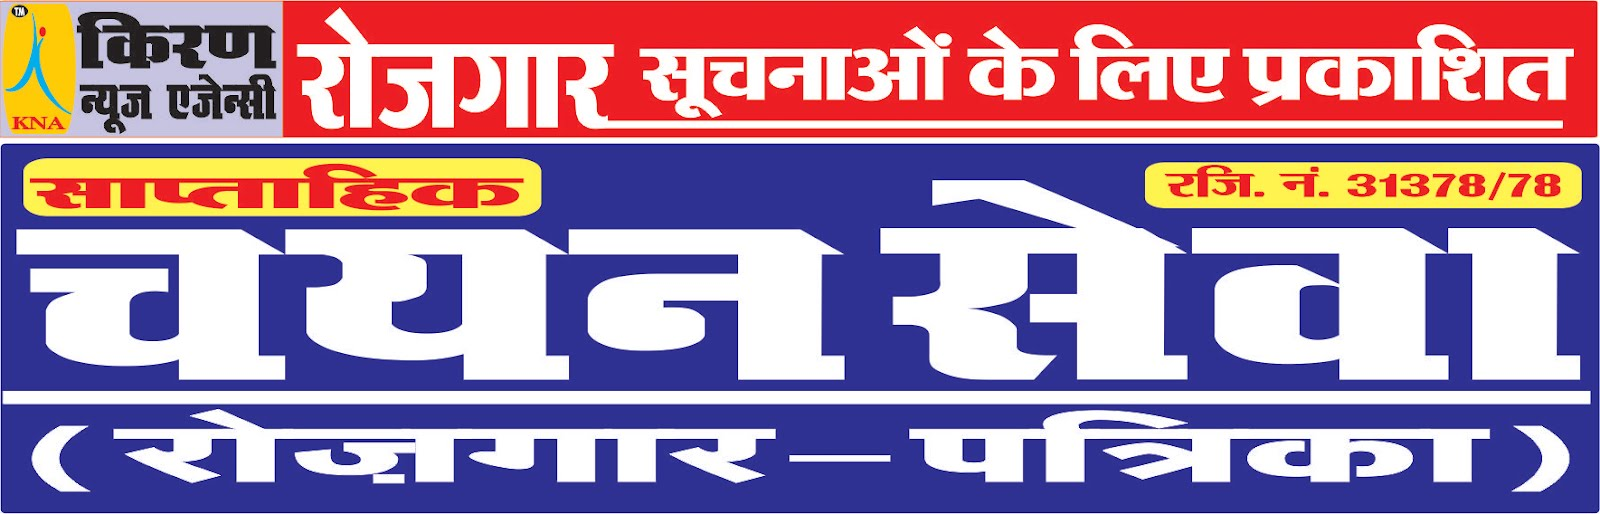 Sarkari naukri Government Jobs MP INDIA Rojgar Patrika Chayan Seva